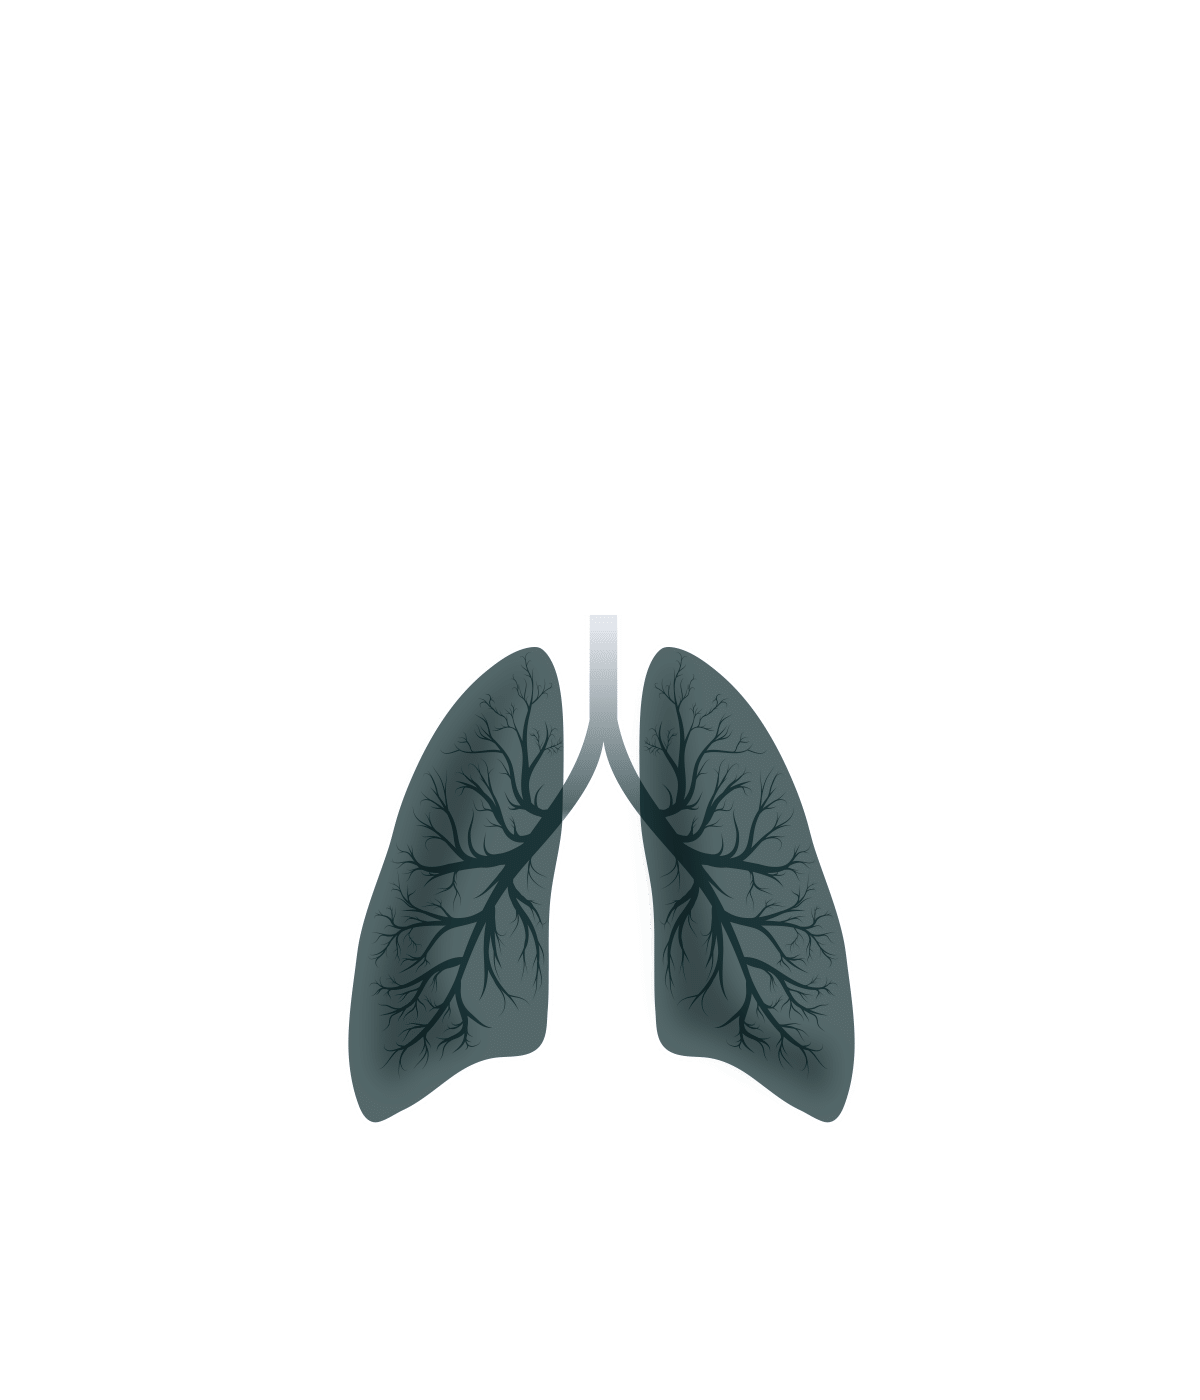 How Covid Affects the Body interactive graphic - Highlighted lungs